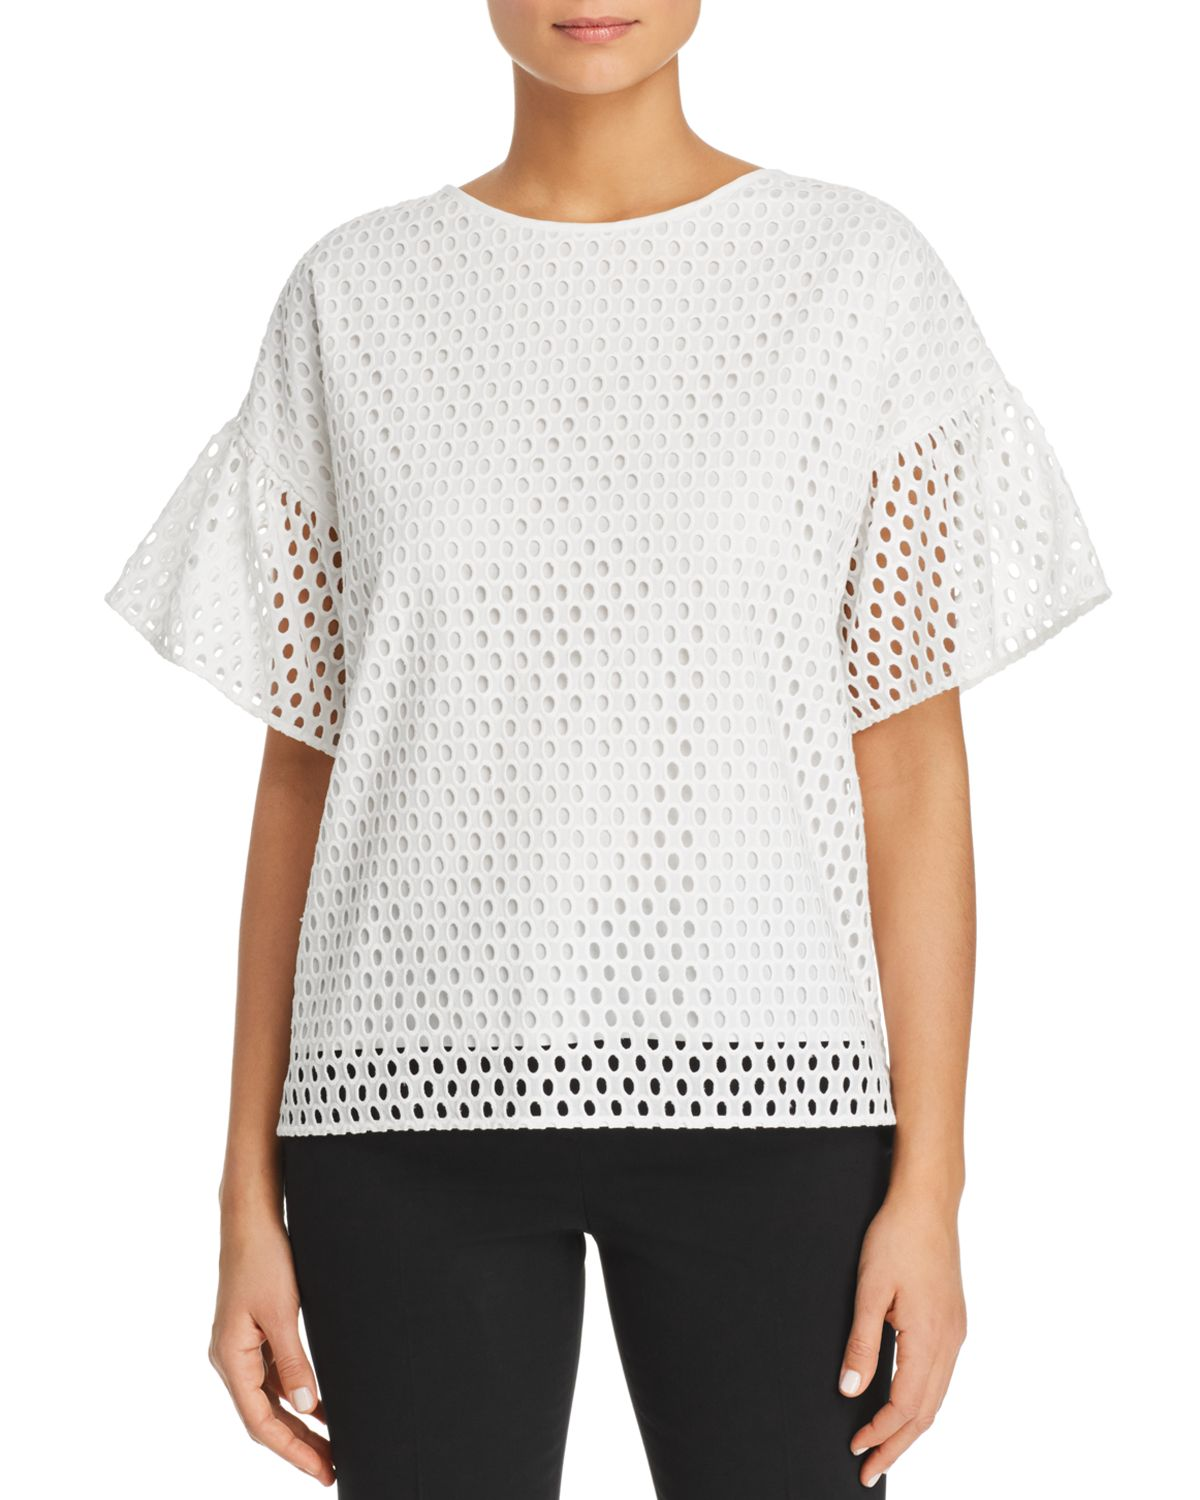 Ilofia Eyelet Cotton Top by Boss